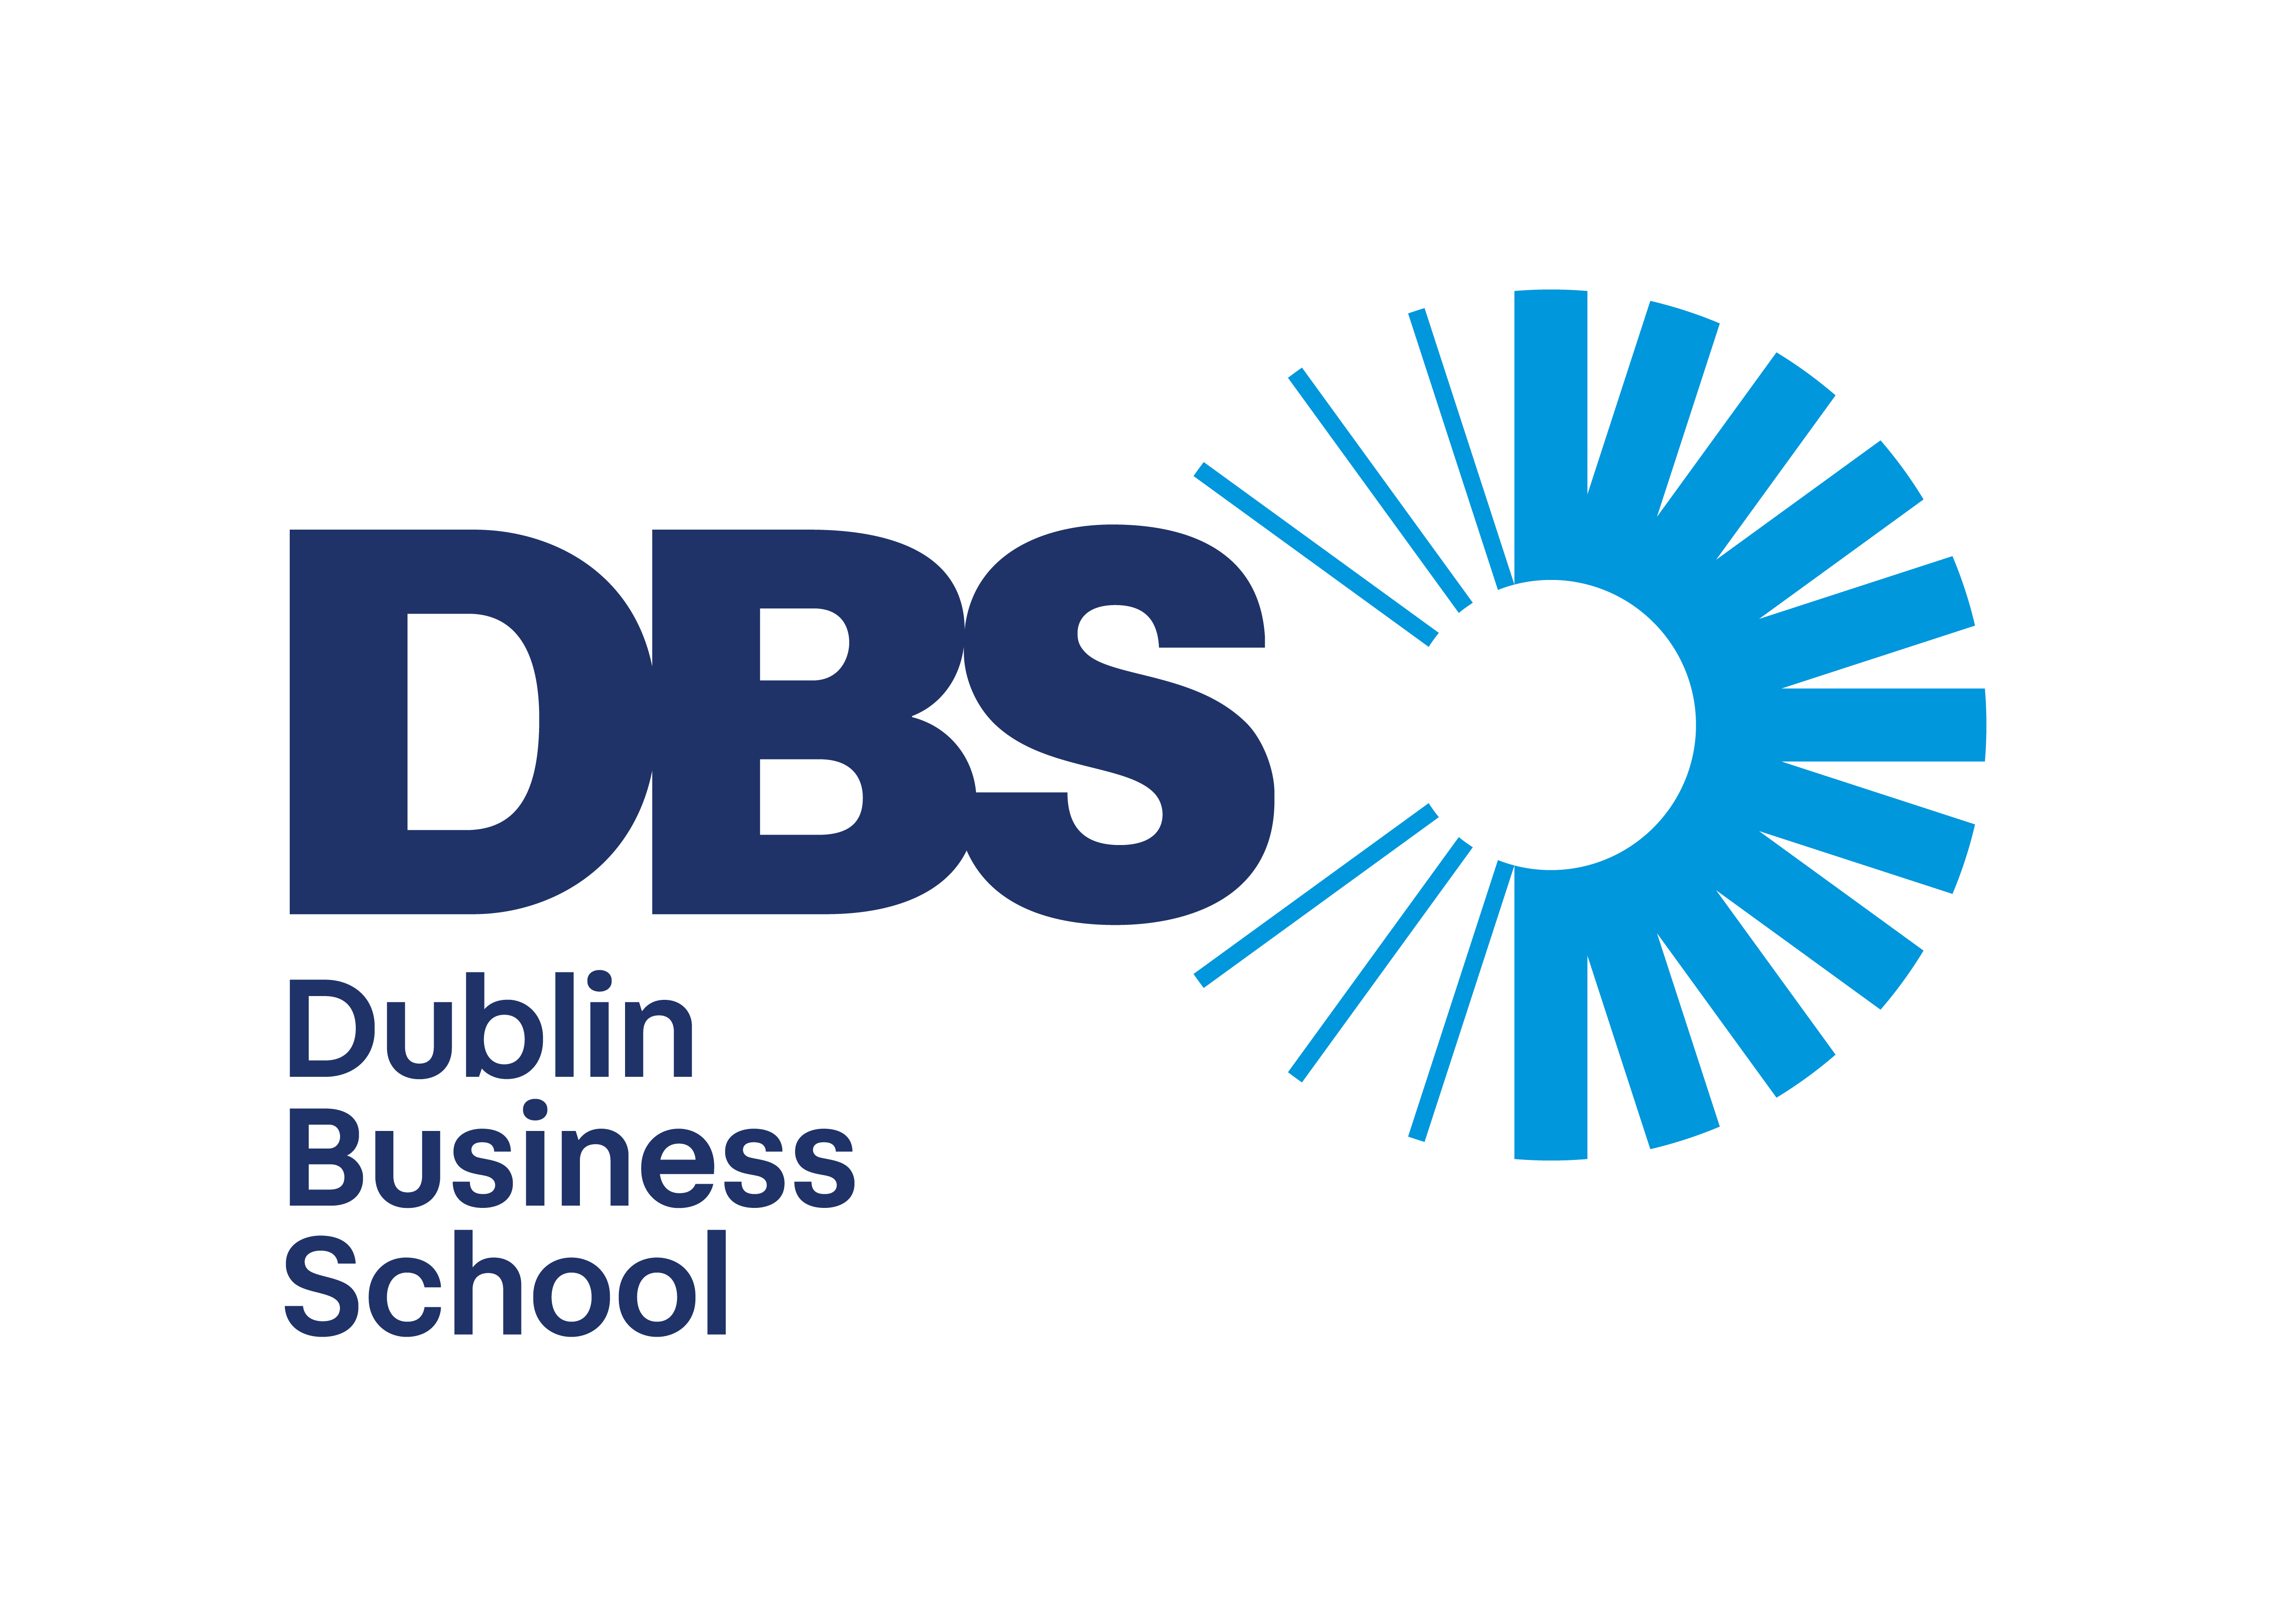 Check out the Dublin Business School schedule for Virtual Education Expo tomorrow